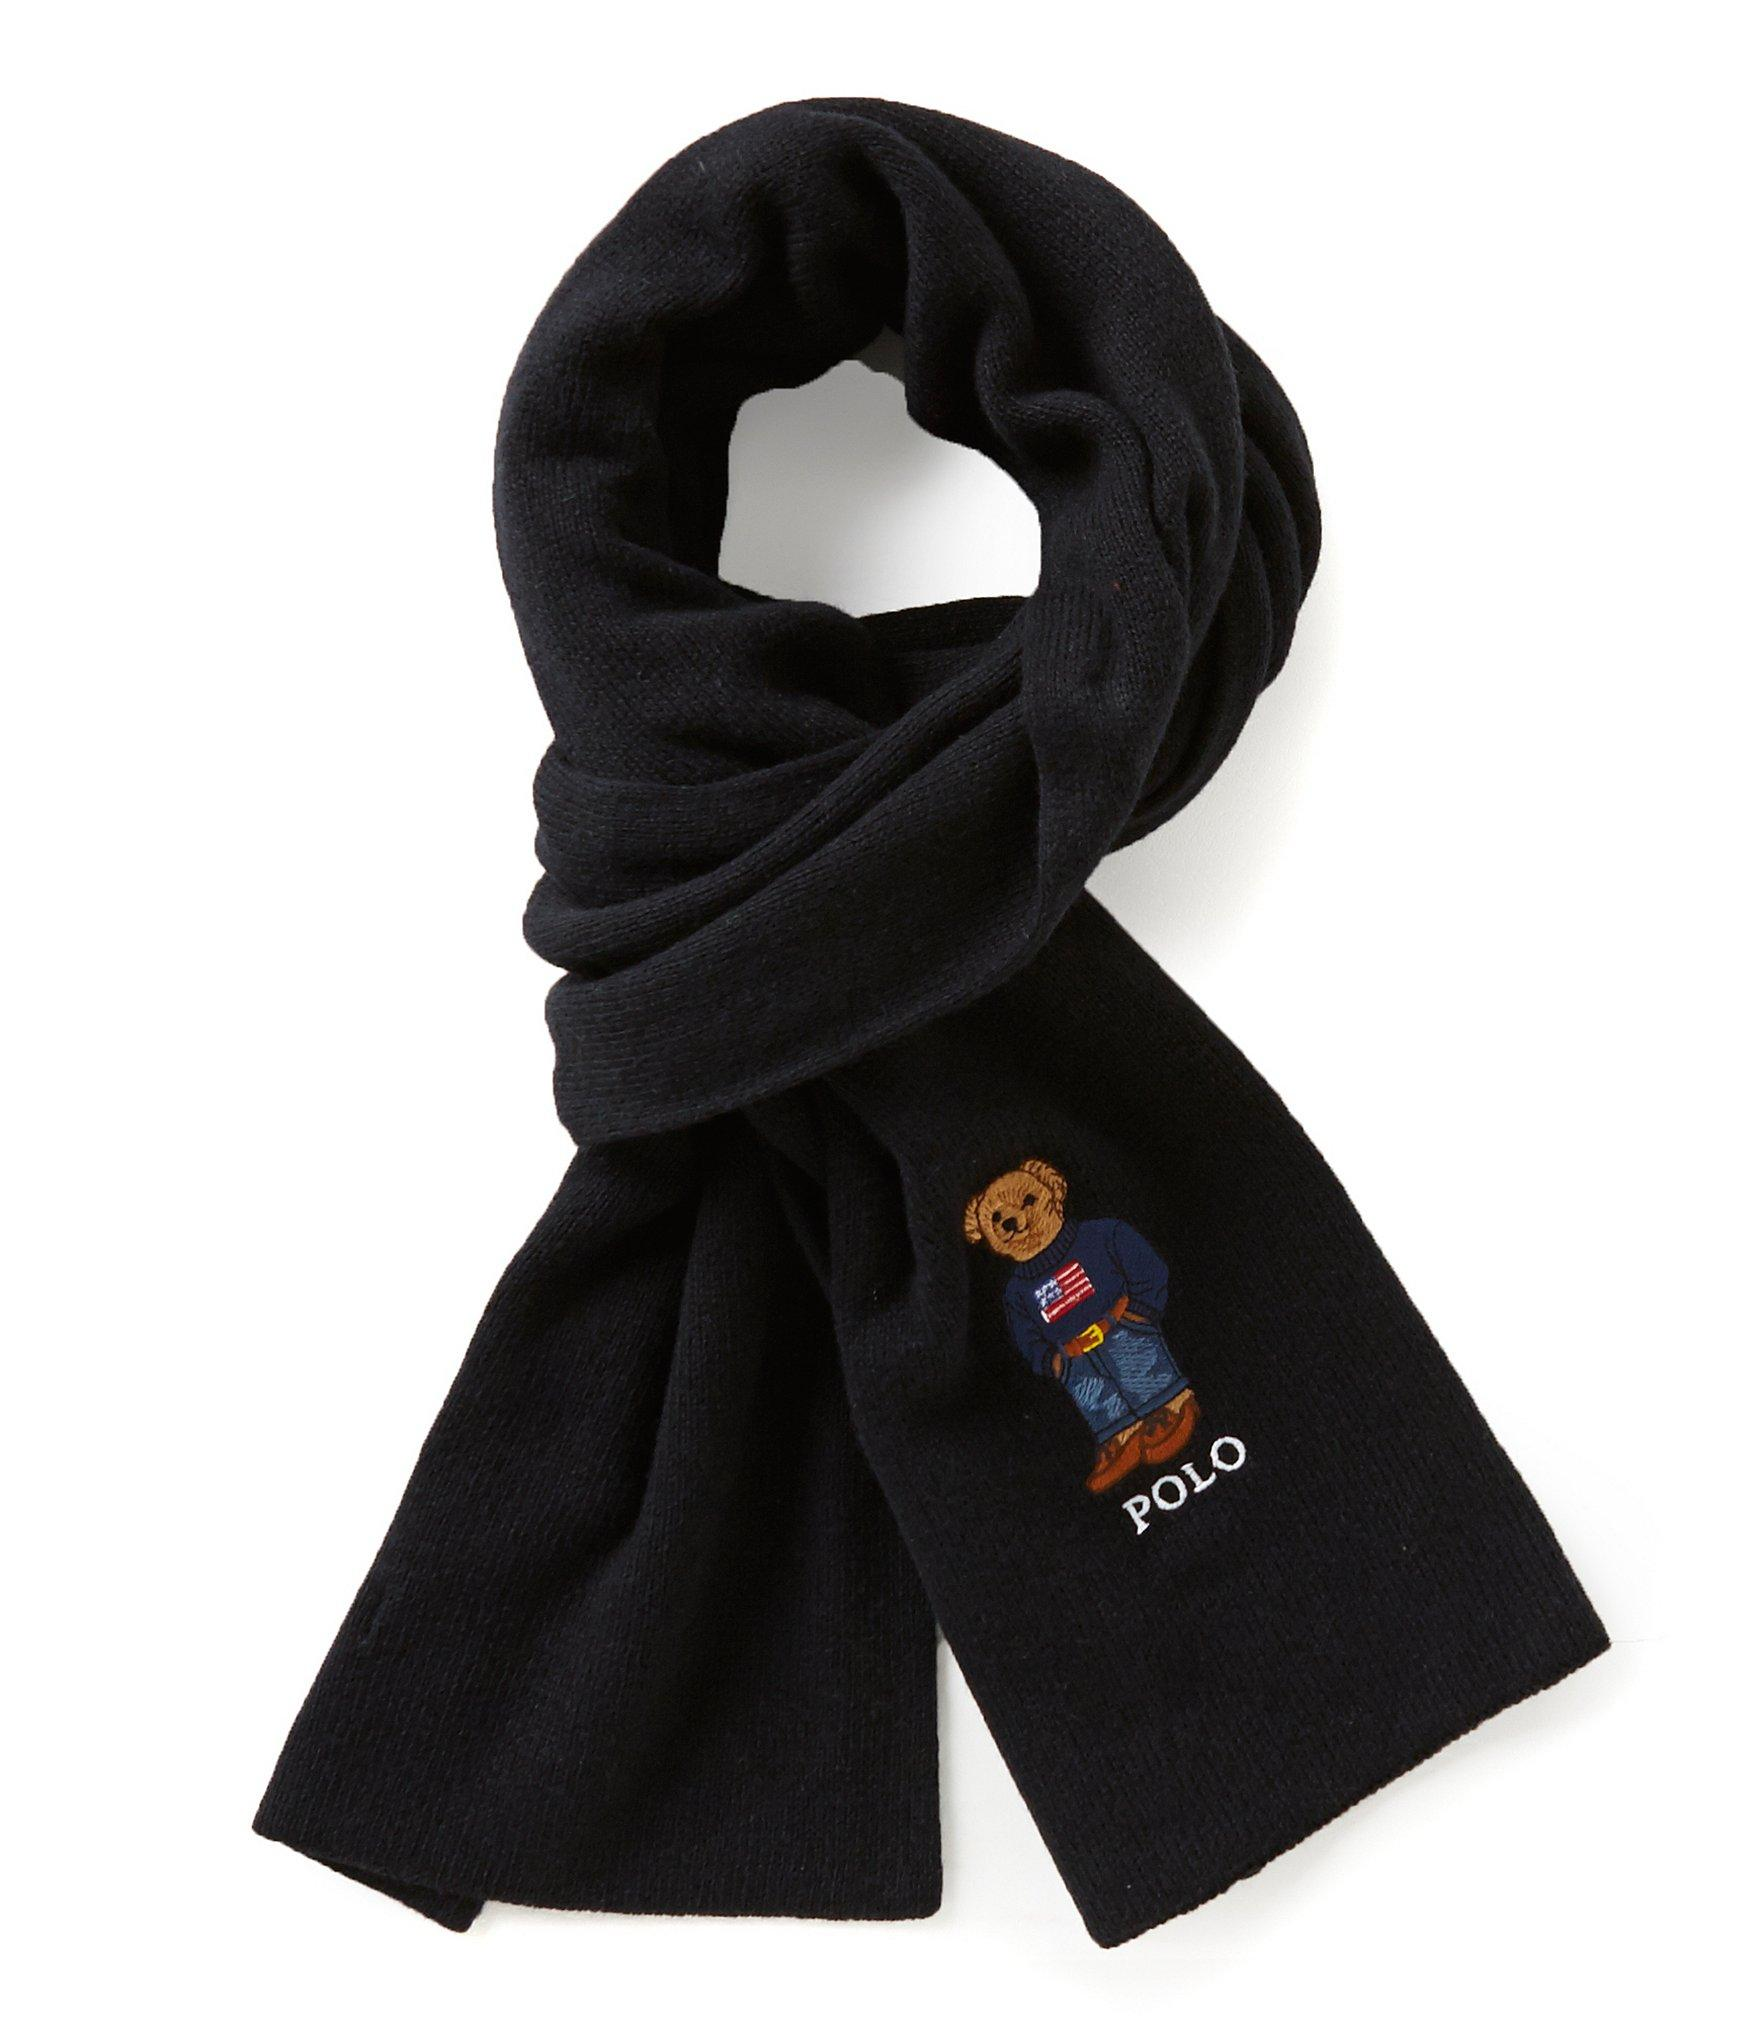 polo ralph polo cardigan ribbed scarf in black